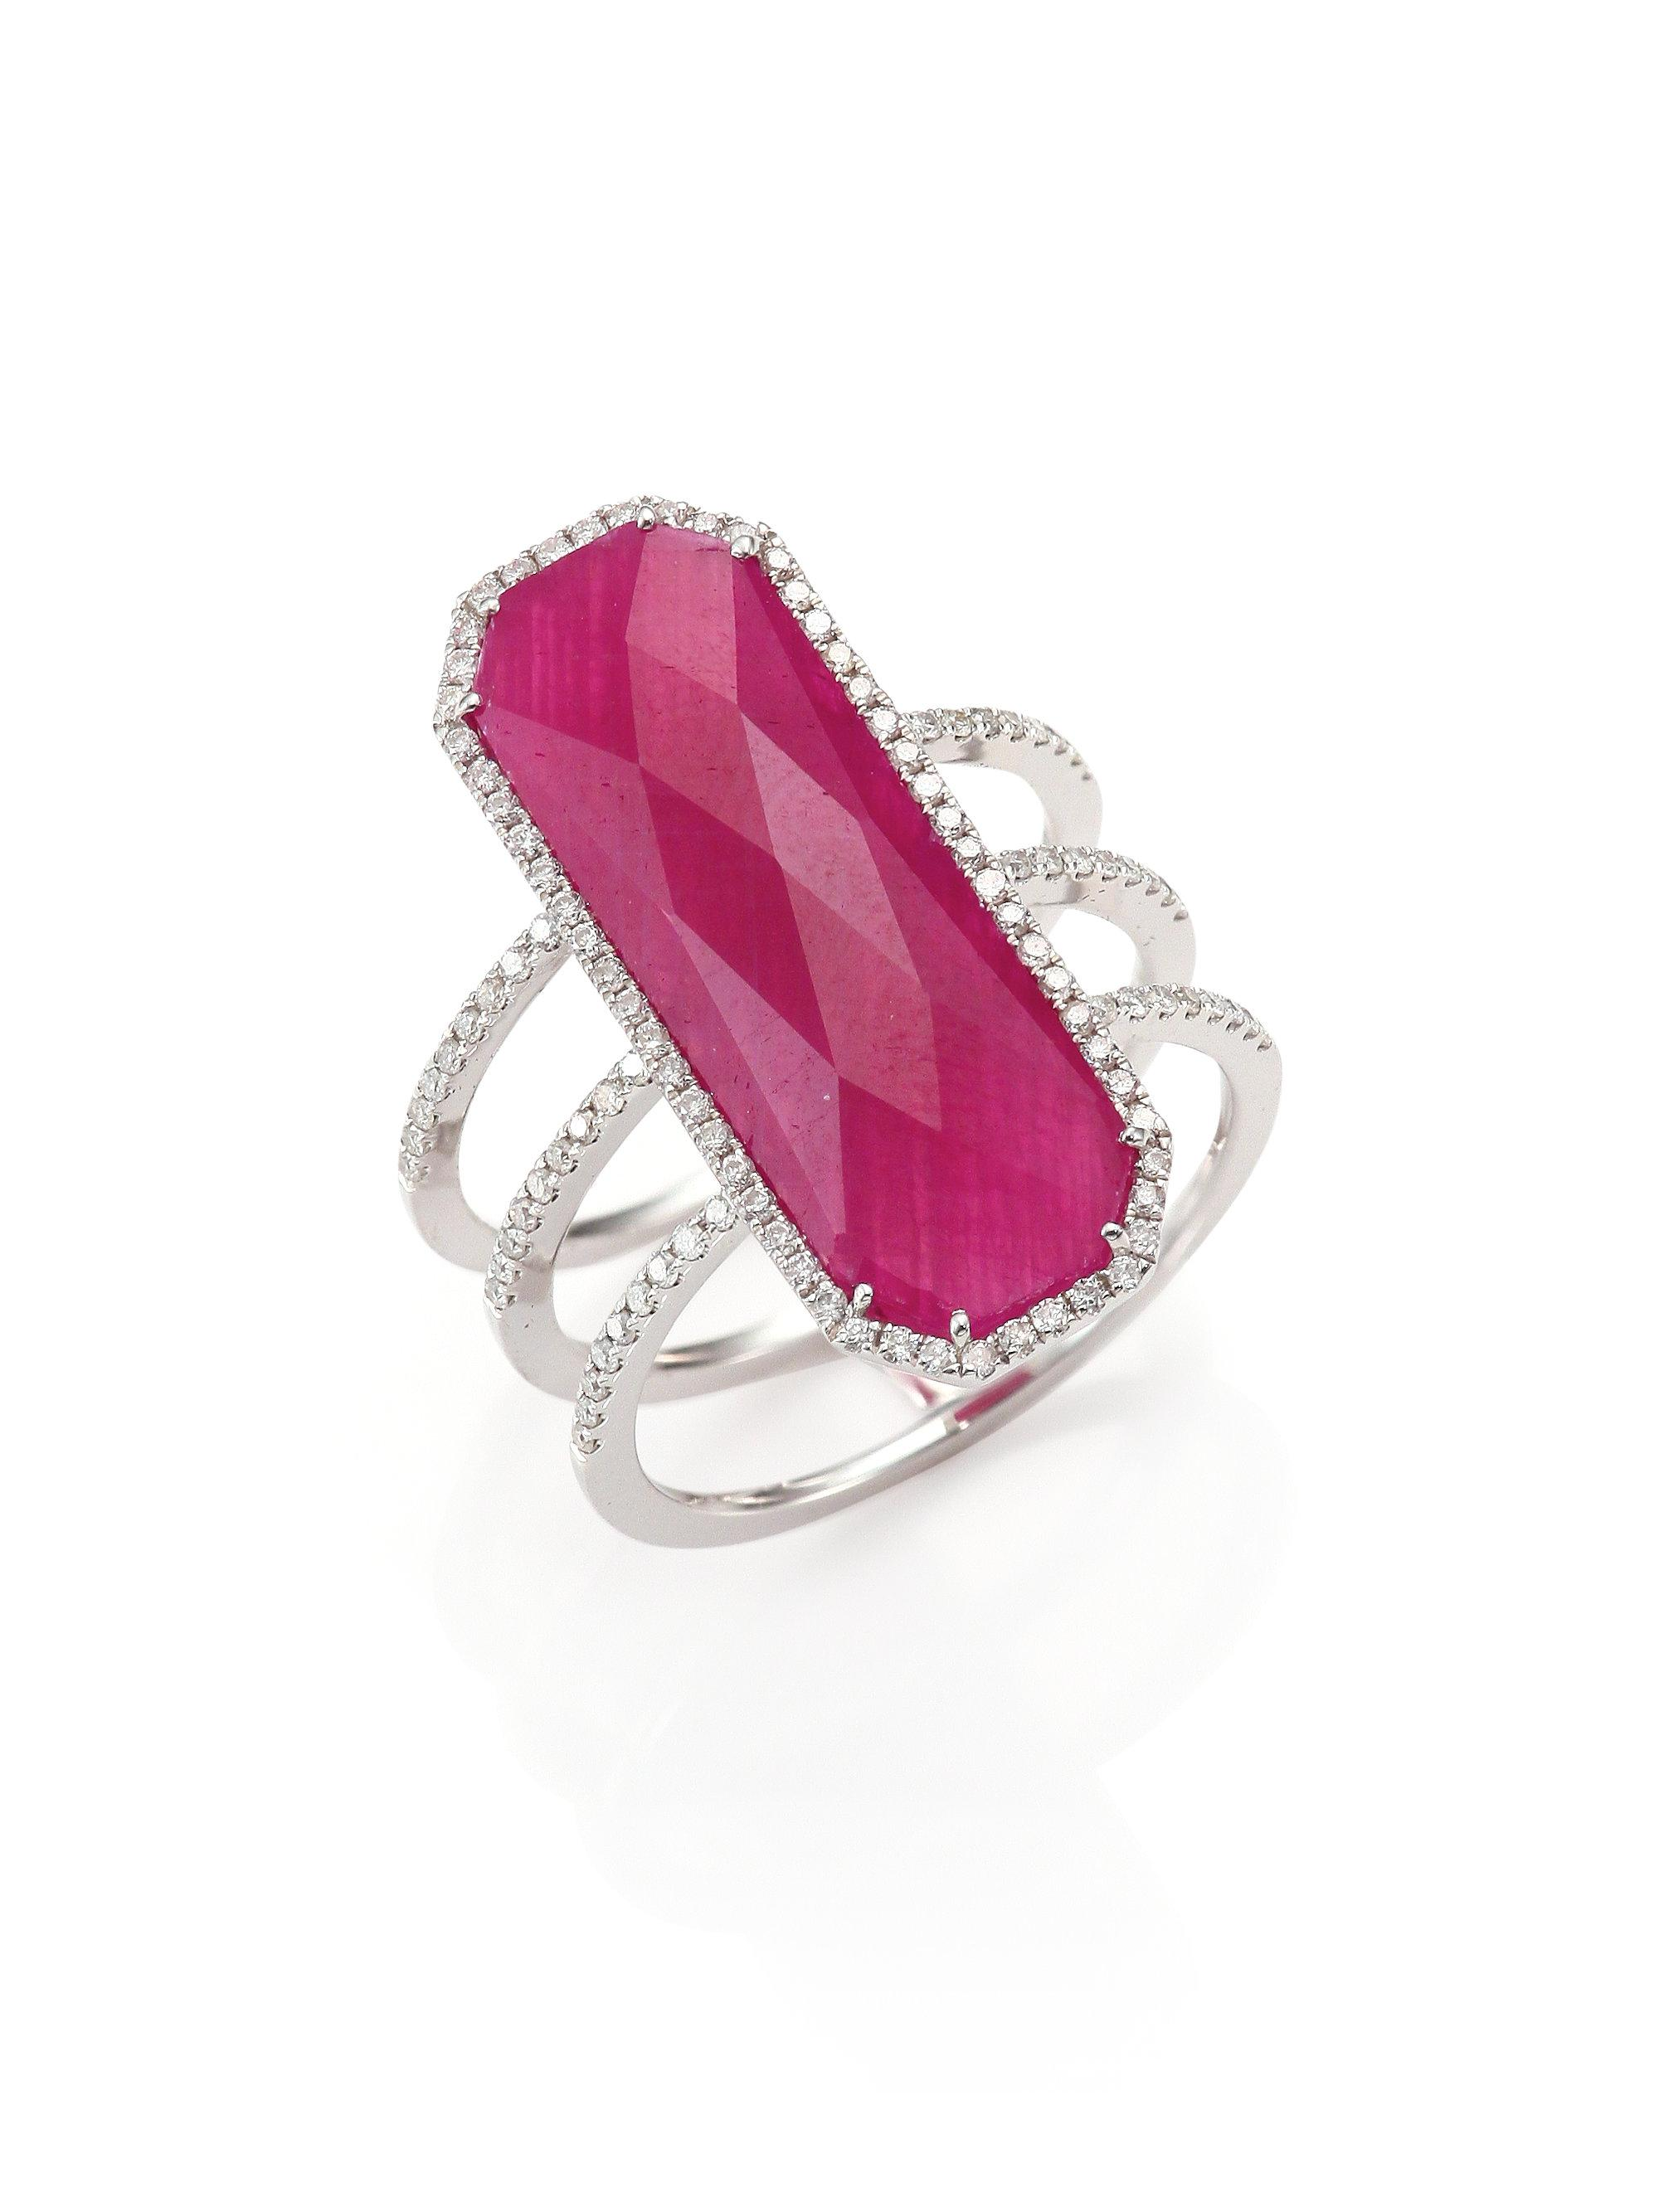 Lyst - Meira T Ruby, Pavé Diamond, 14k White Gold & Silver Ring in Pink